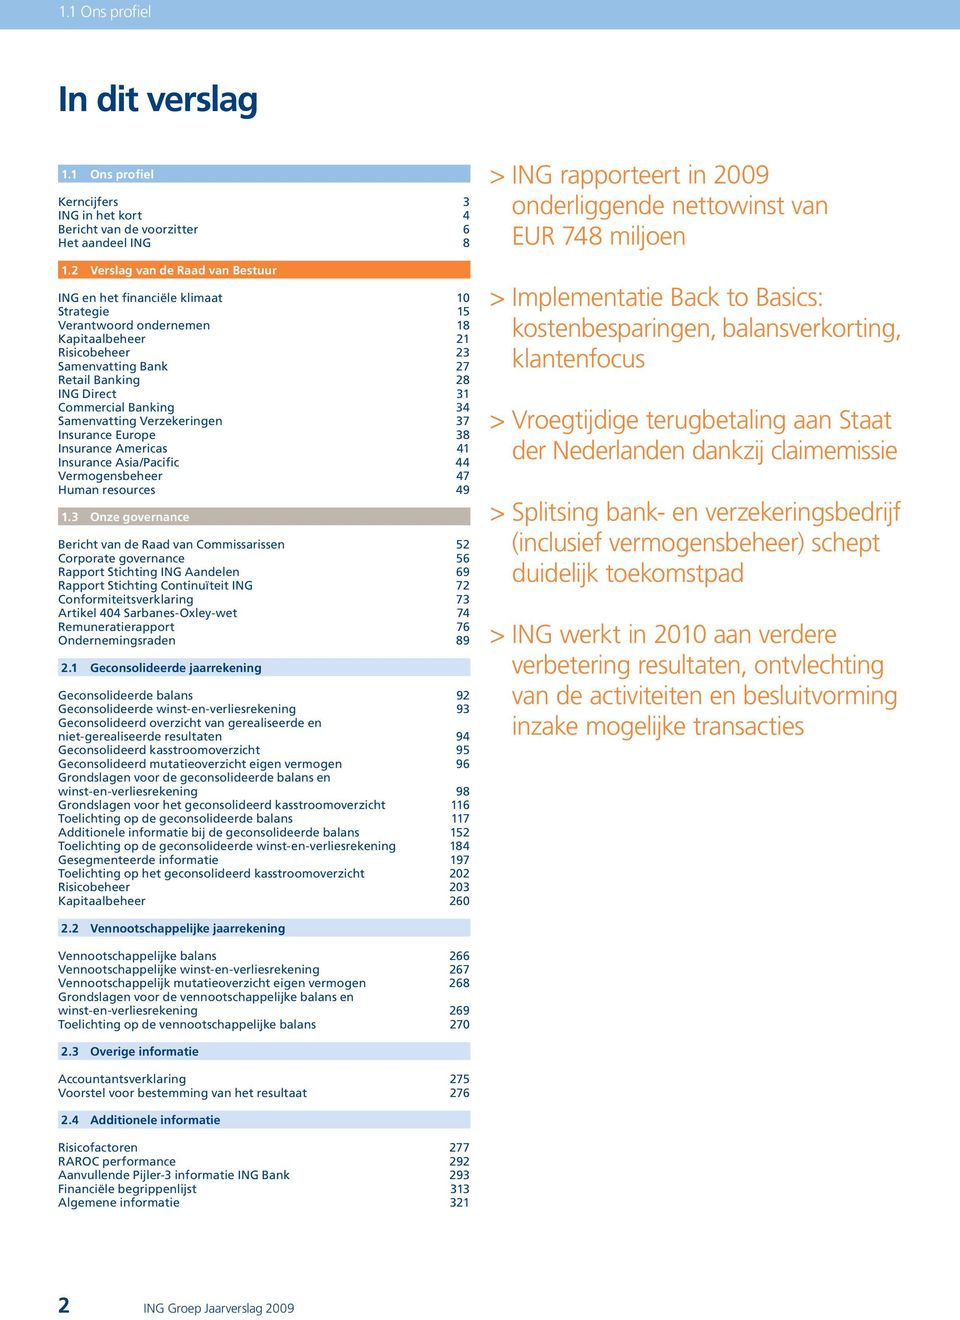 Commercial Banking 34 Samenvatting Verzekeringen 37 Insurance Europe 38 Insurance Americas 41 Insurance Asia/Pacific 44 Vermogensbeheer 47 Human resources 49 1.